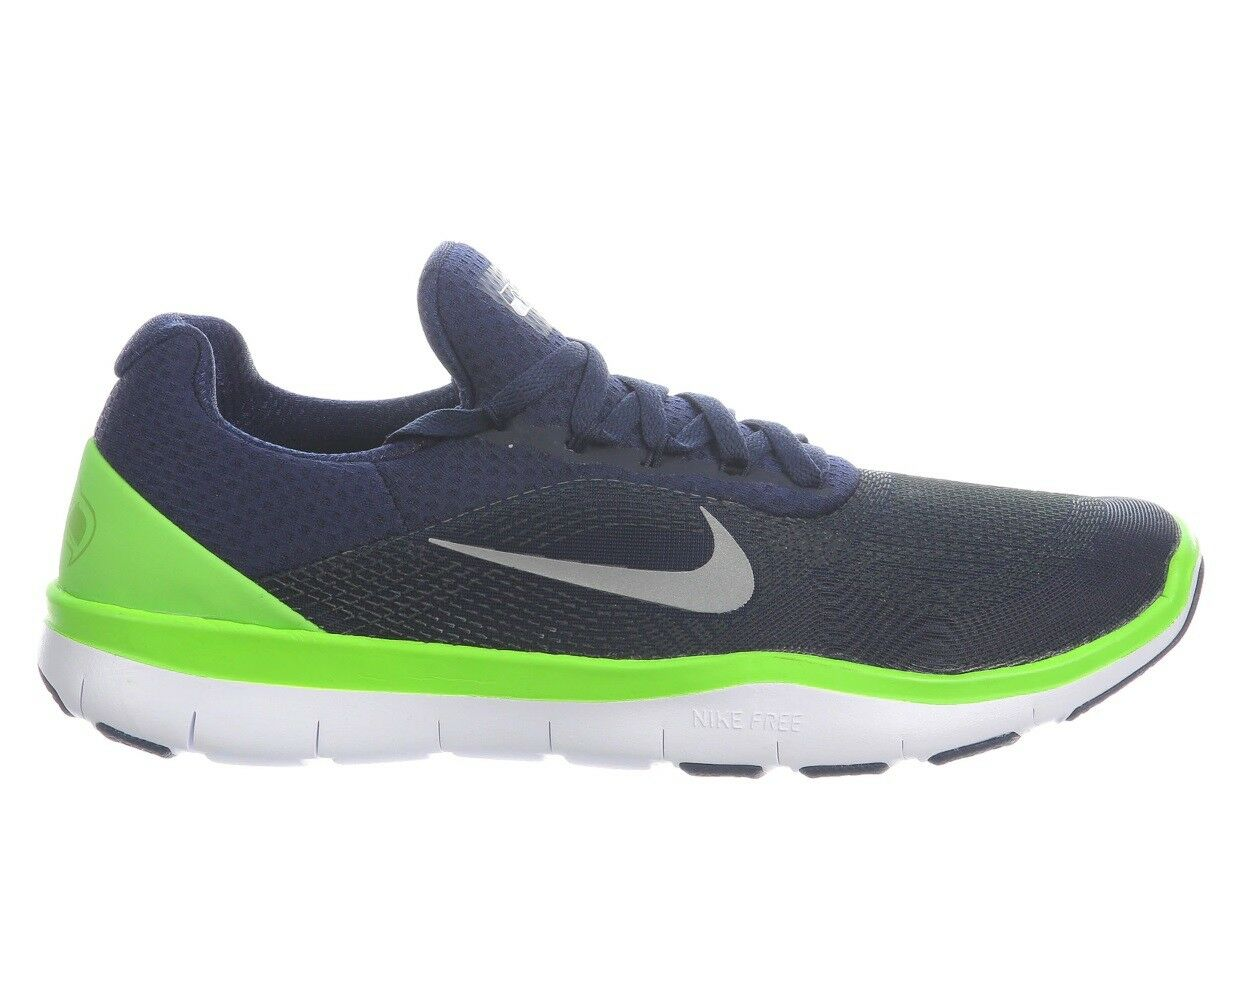 535d5ad258 Nike Free Trainer V7 Seahawks Mens AA1948-400 Navy Green Training shoes  Size 13